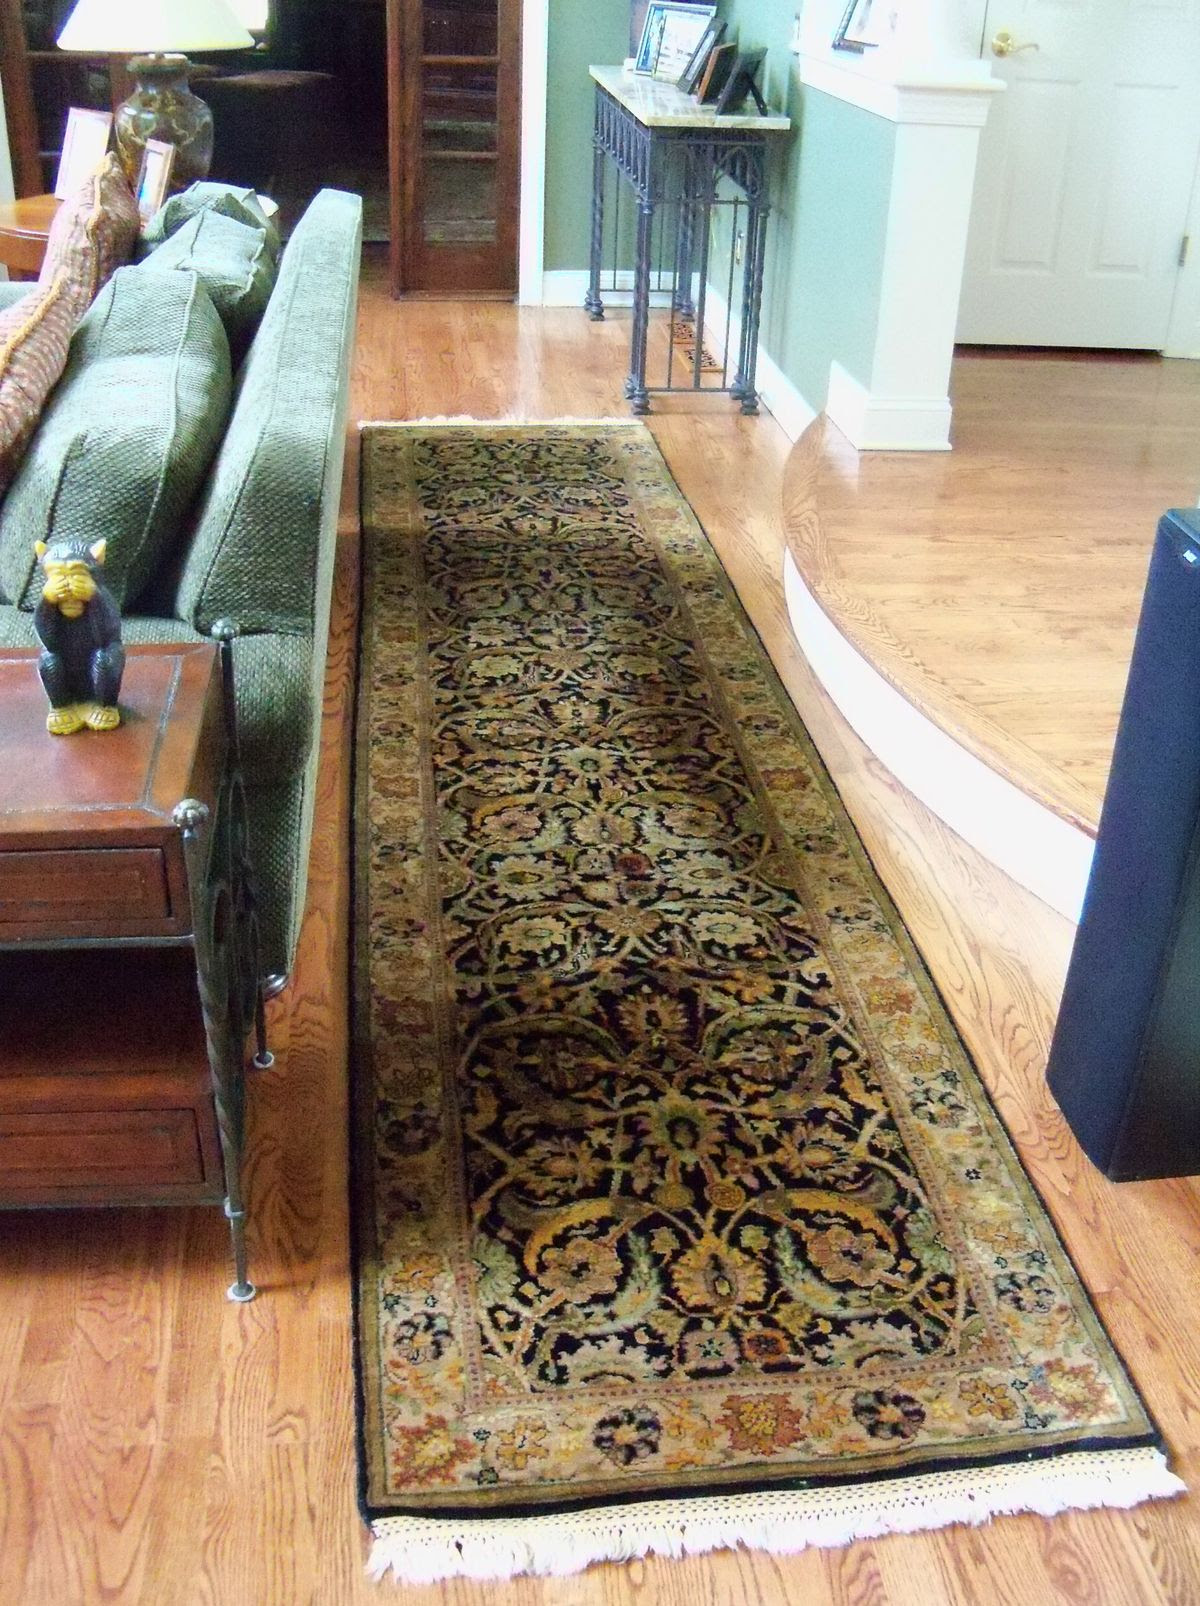 Homeowners In Basking Ridge NJ Complete Living Room Makeover With New Oriental Rugs From Brandon BrandonRugs Located Bucks